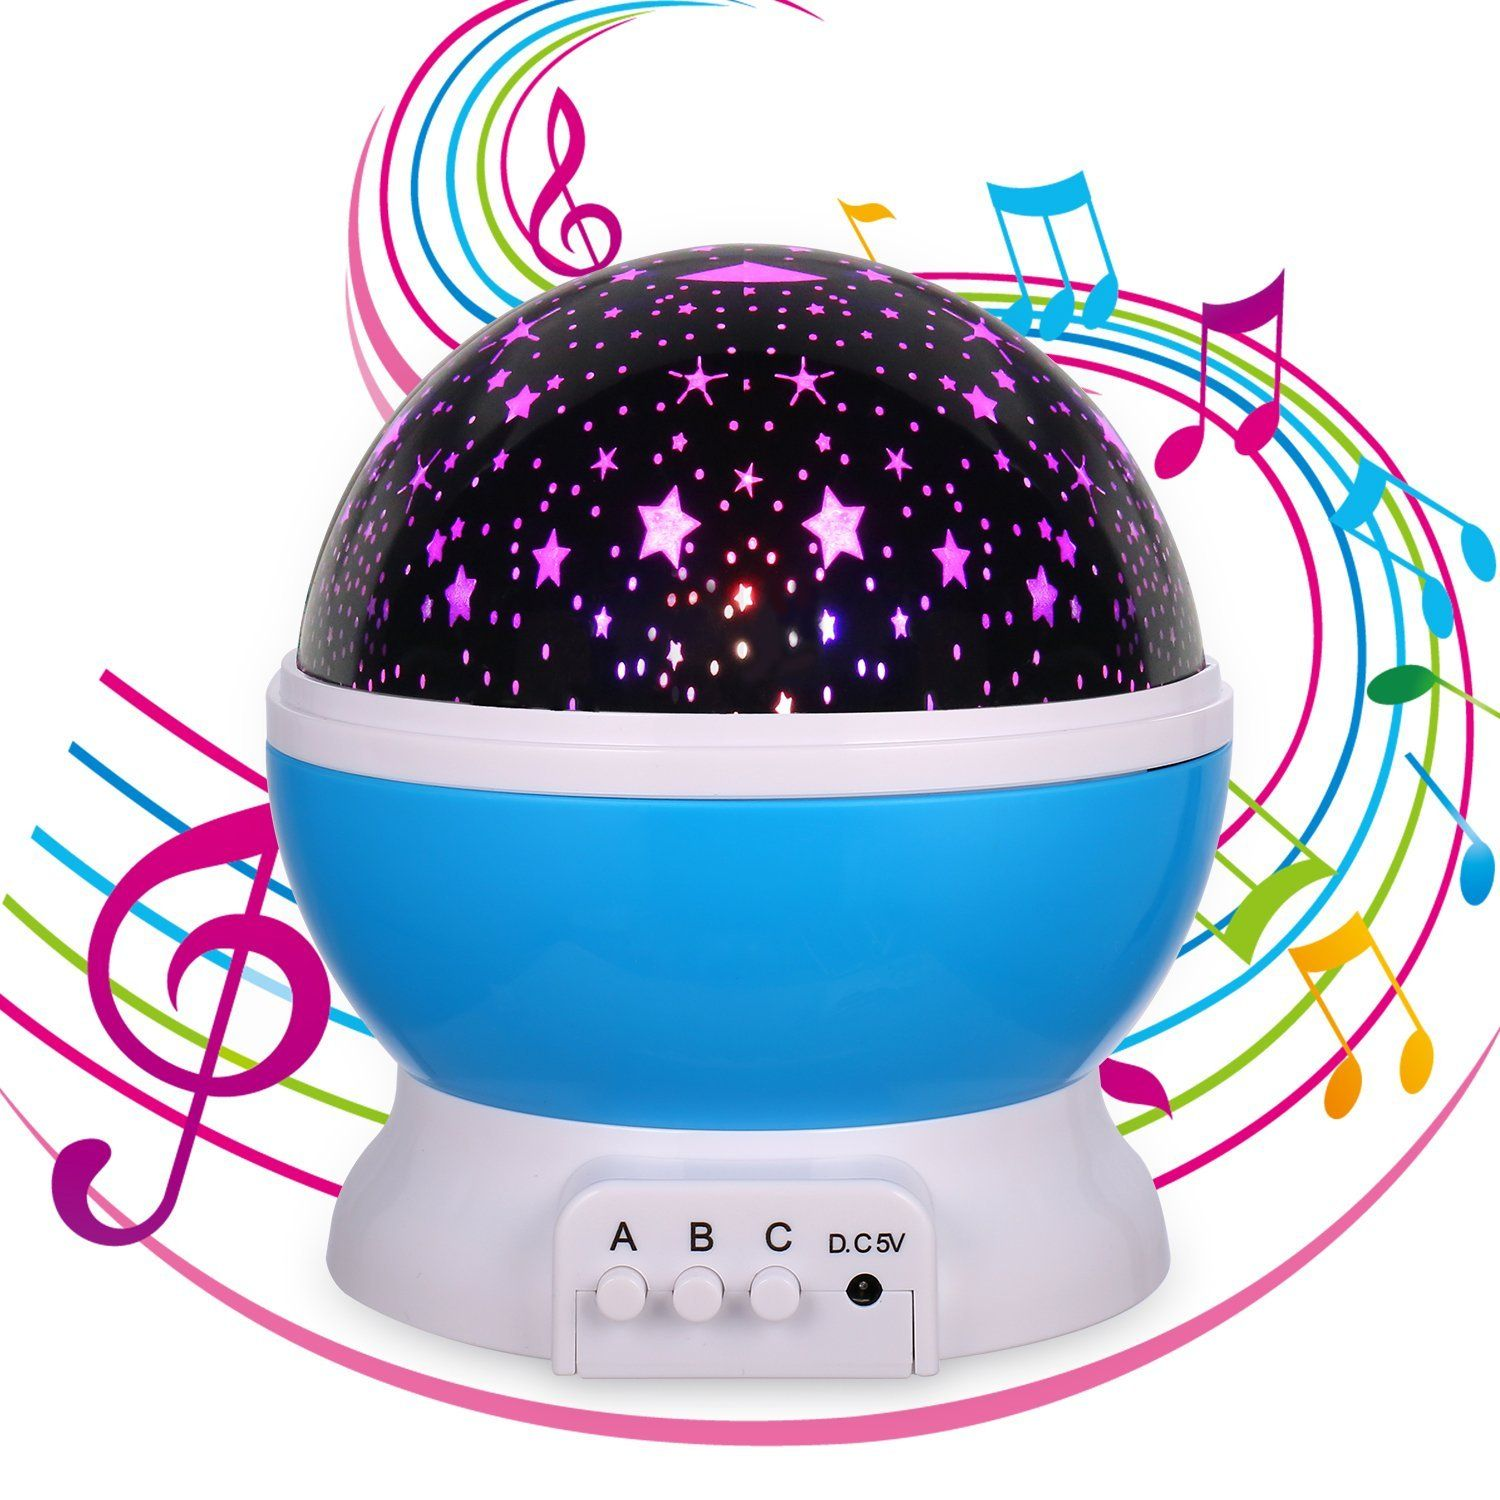 Best Nightlight For Sleep Star Projector Music Toys Lullaby Night Light Gift For Women Or